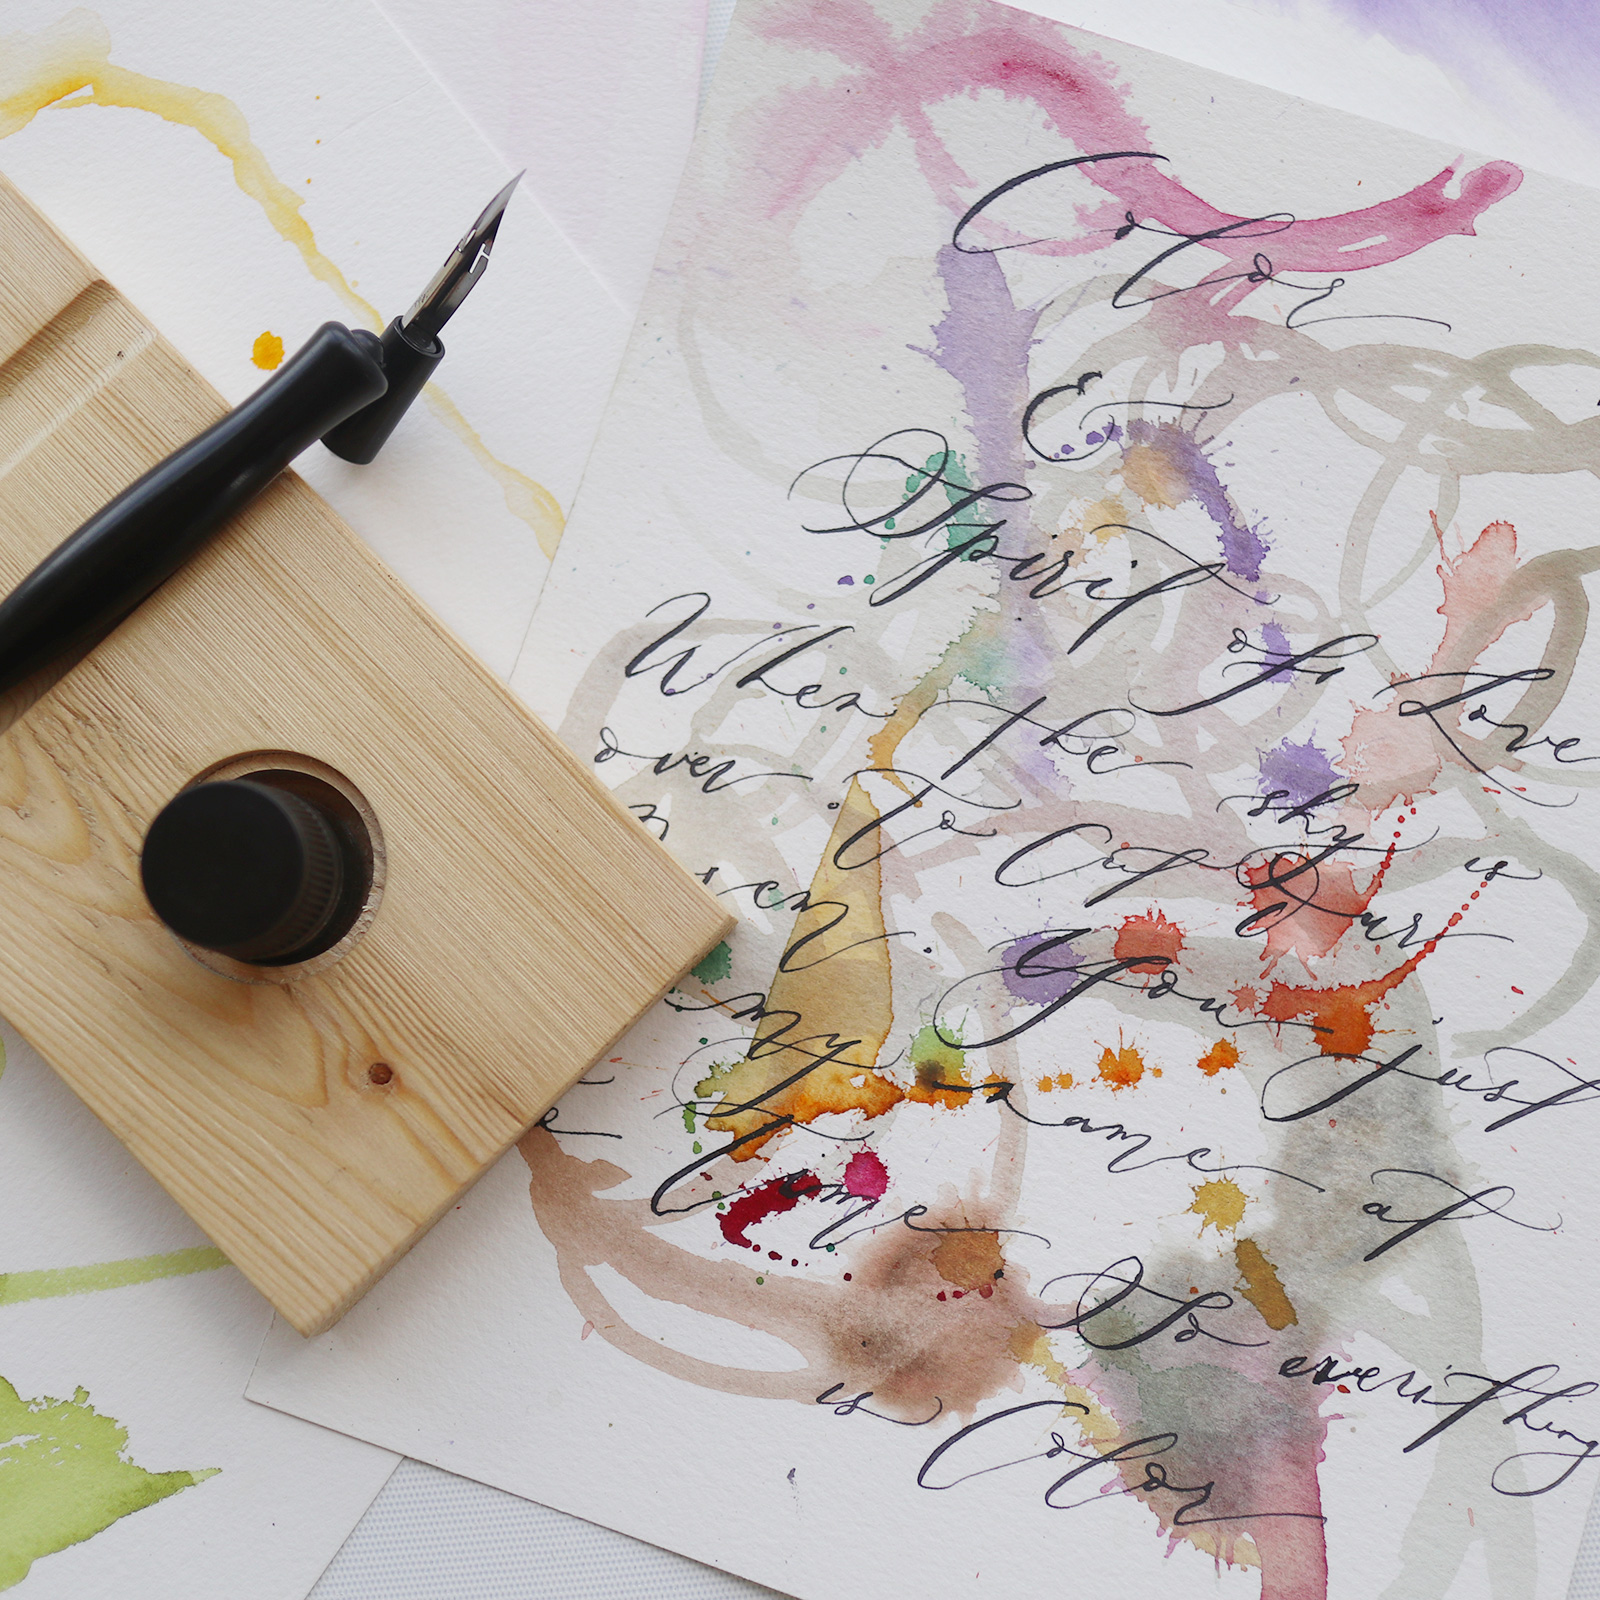 Modern-Calligraphy-&-Artistic-Watercolor-Background-Class